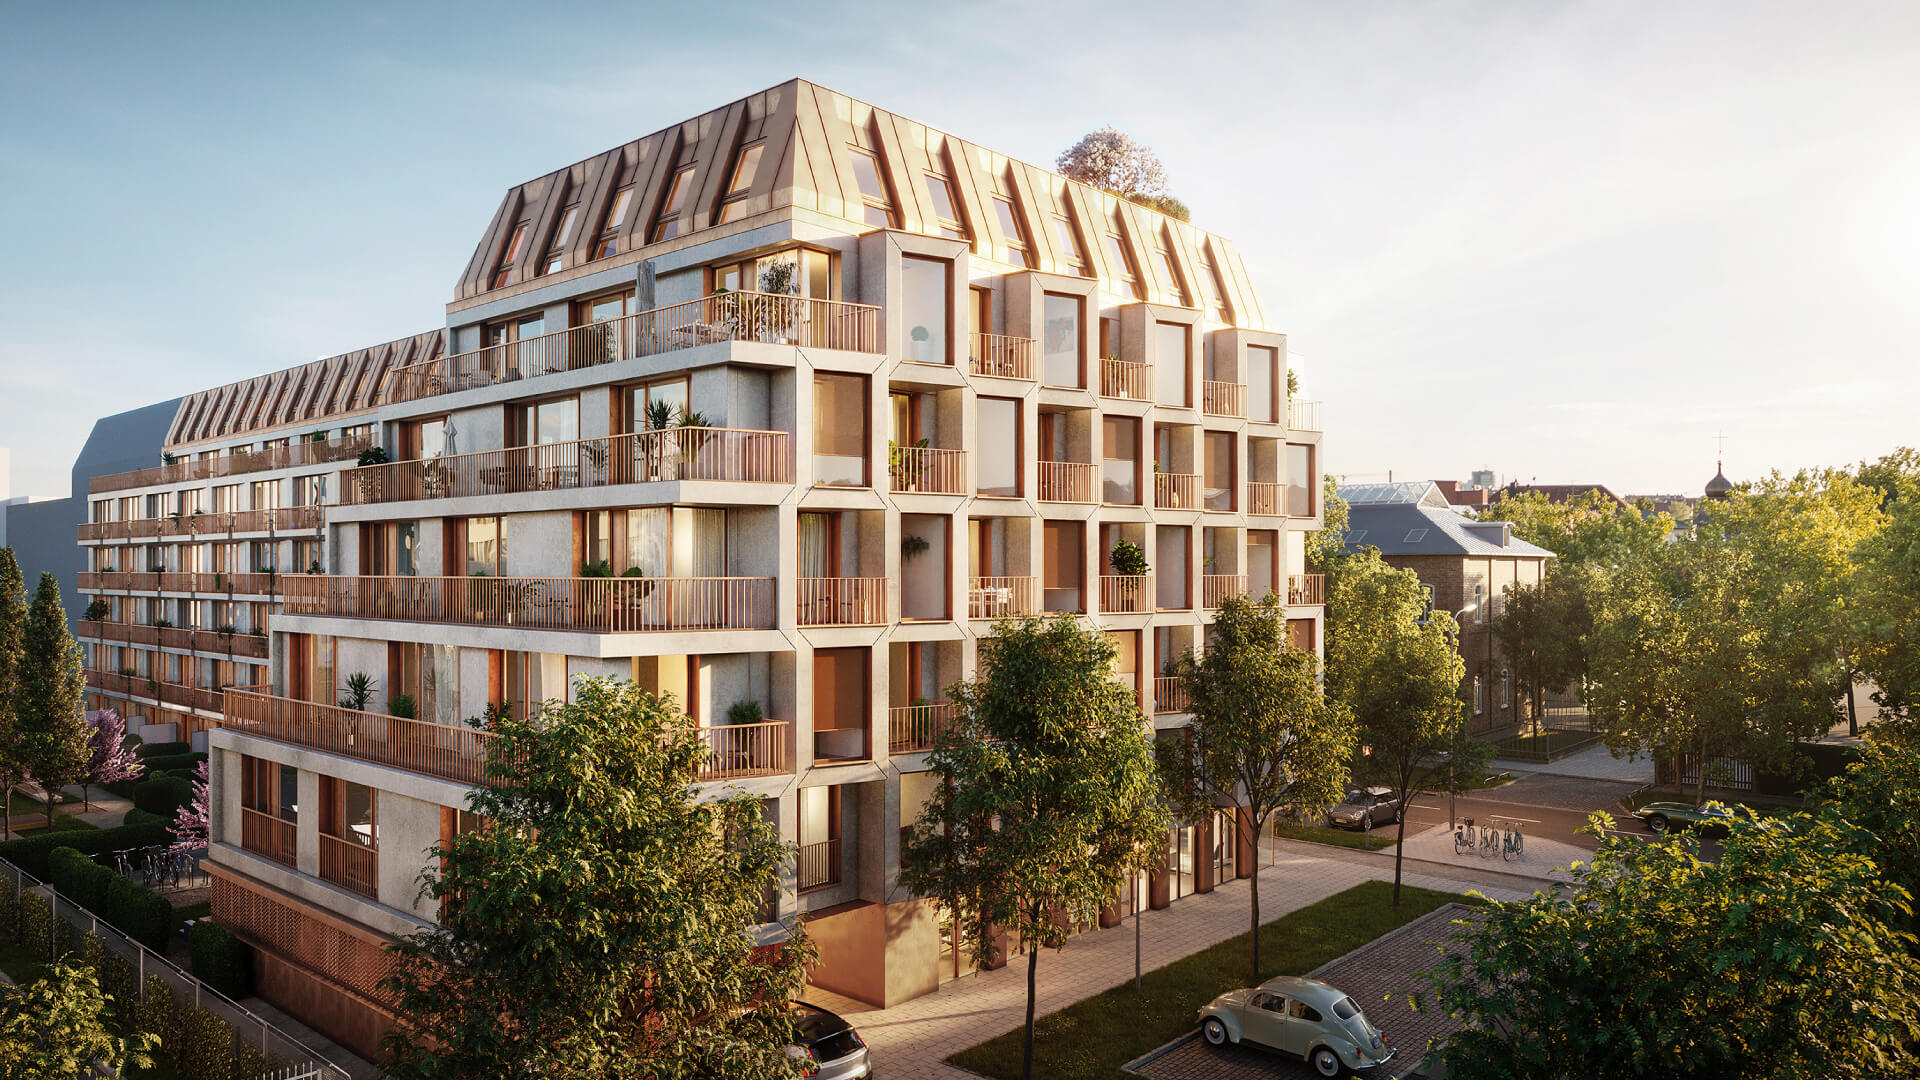 UNStudio's residential project in Munich brings home an 'analogue smart' concept